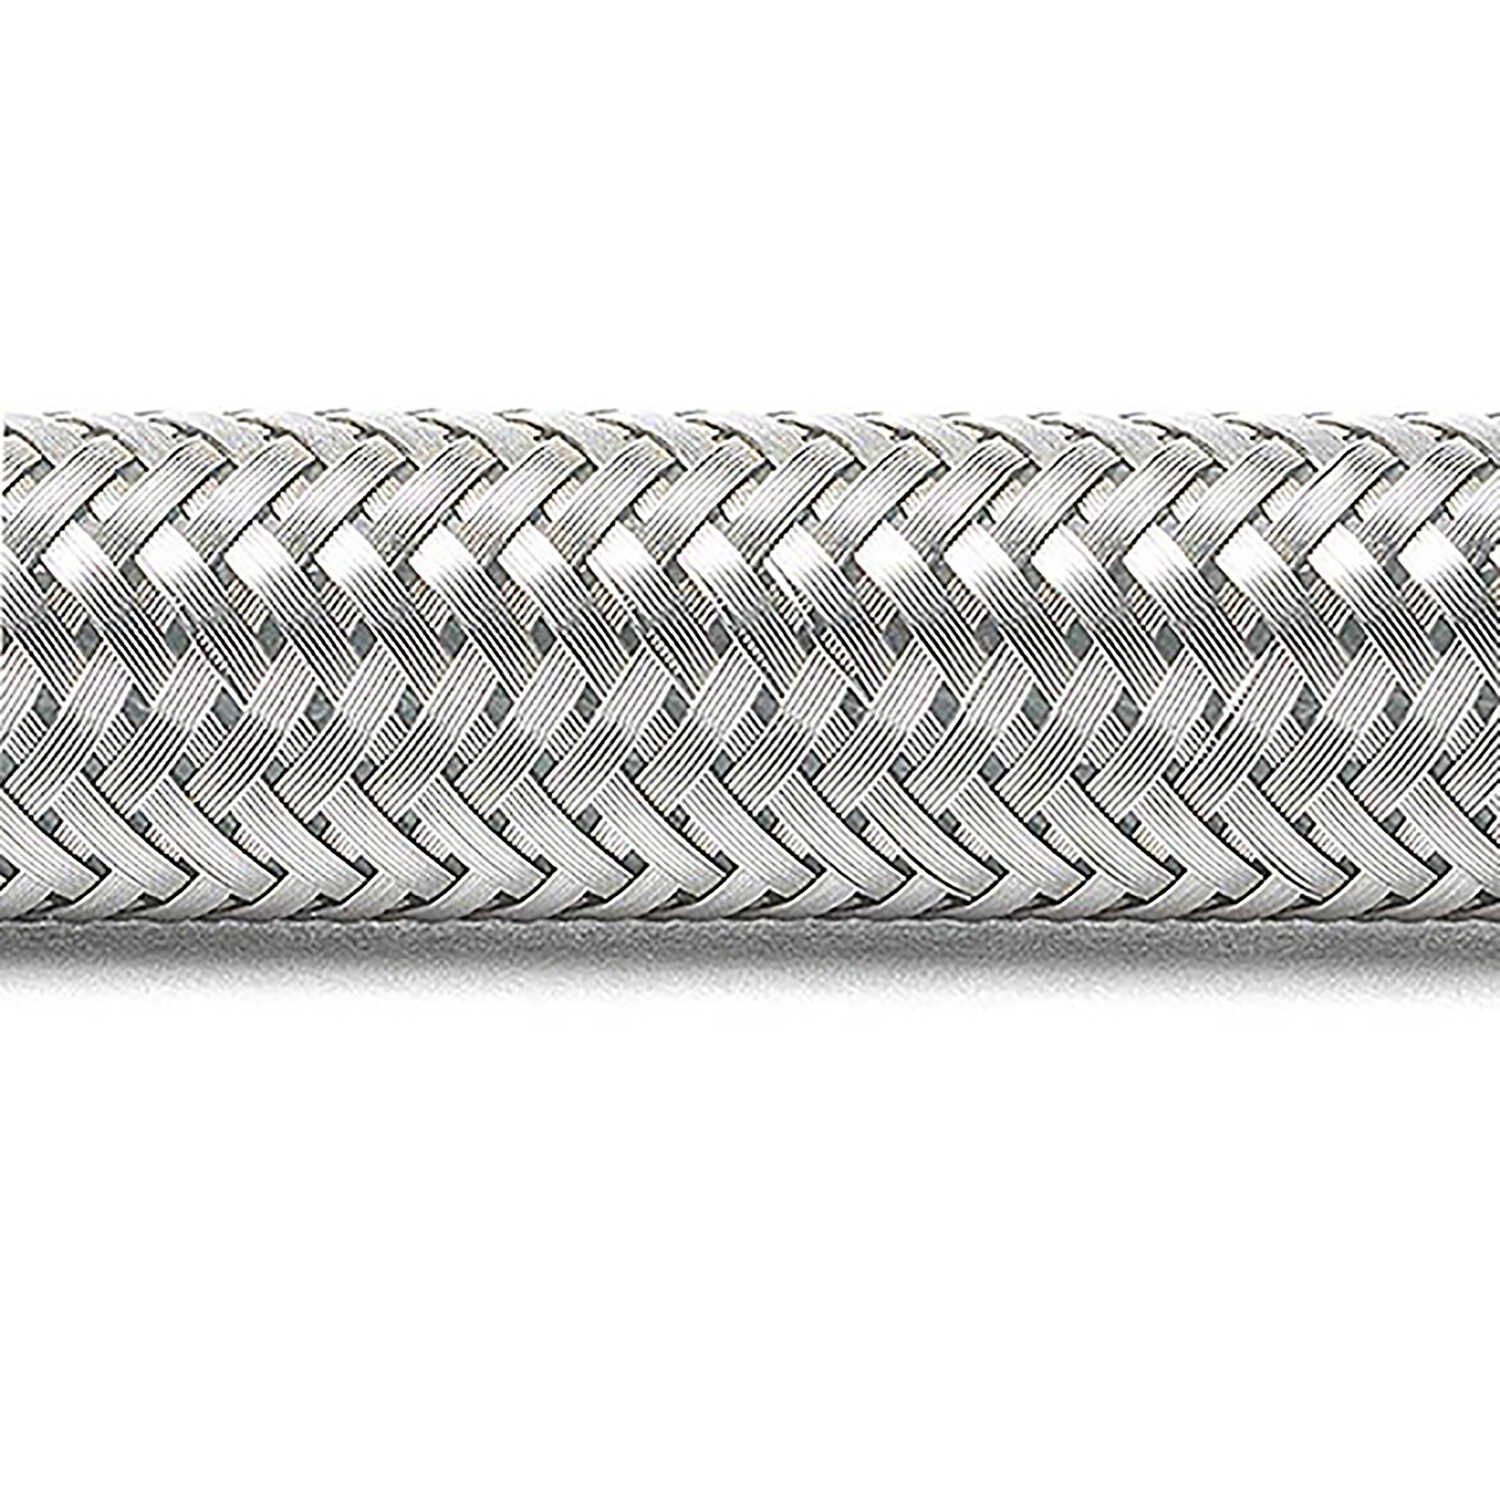 Ace  3/8 in. Compression   x 3/8 in. Dia. MIP  48 in. Braided Stainless Steel  Supply Line